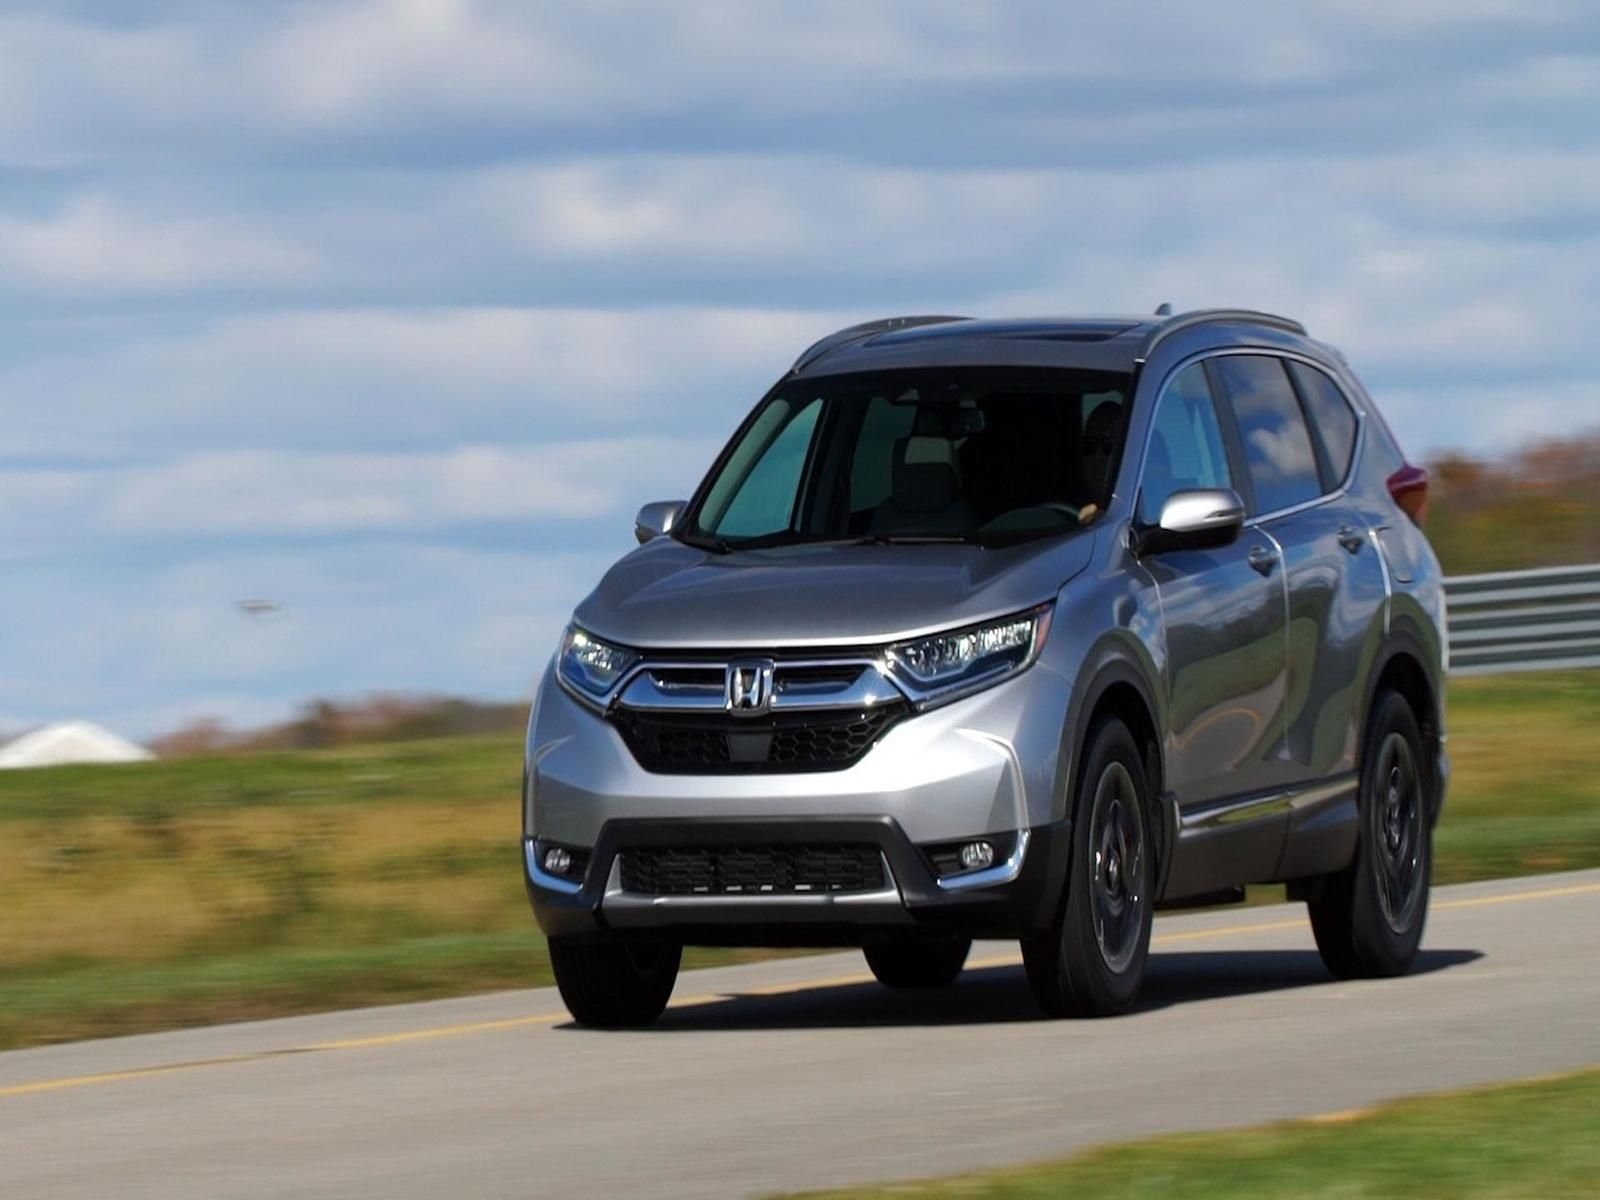 2017 Honda CRV EX Configurations Used cars near me